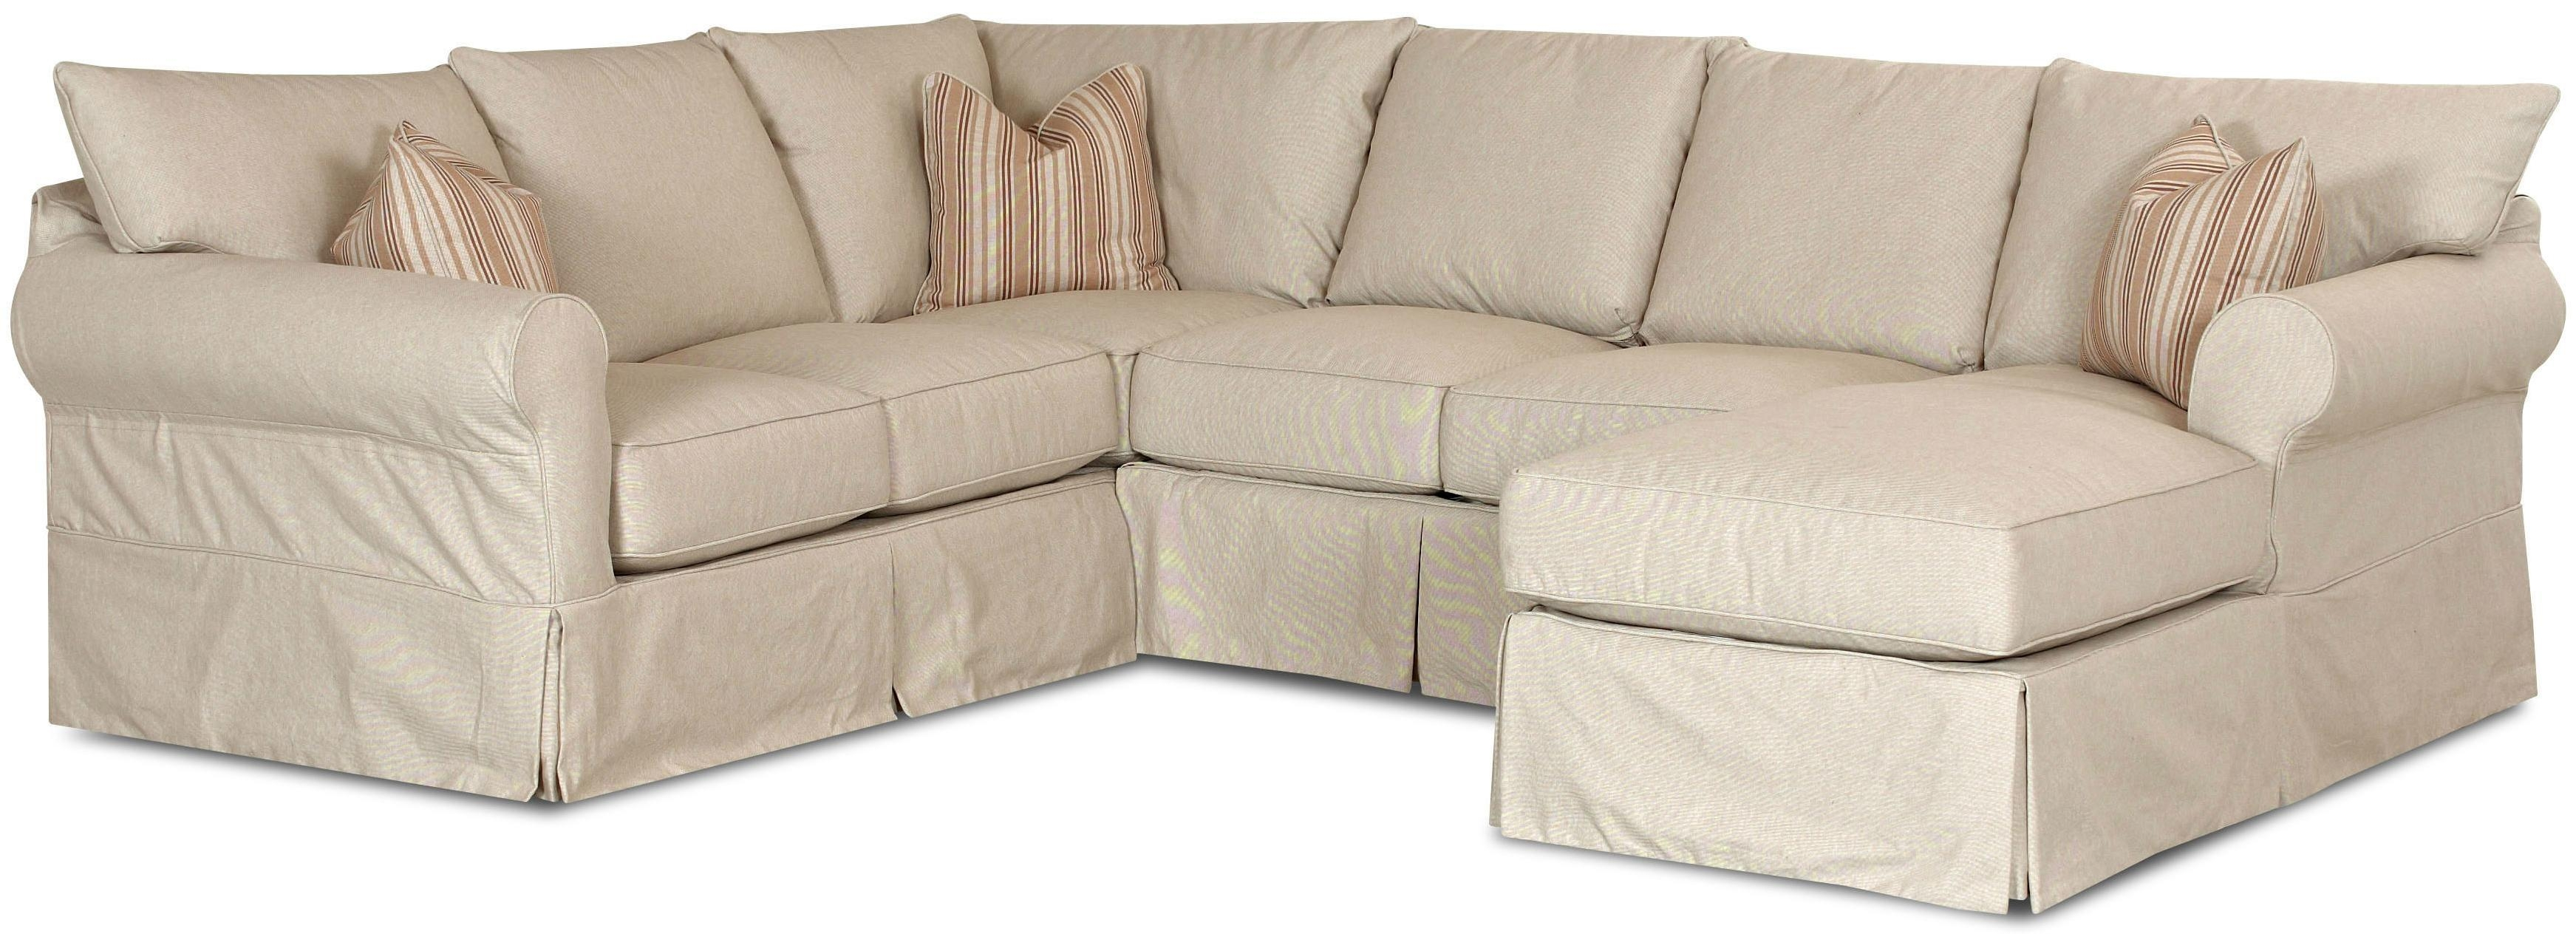 Leather Sectional Sofa Slipcovers